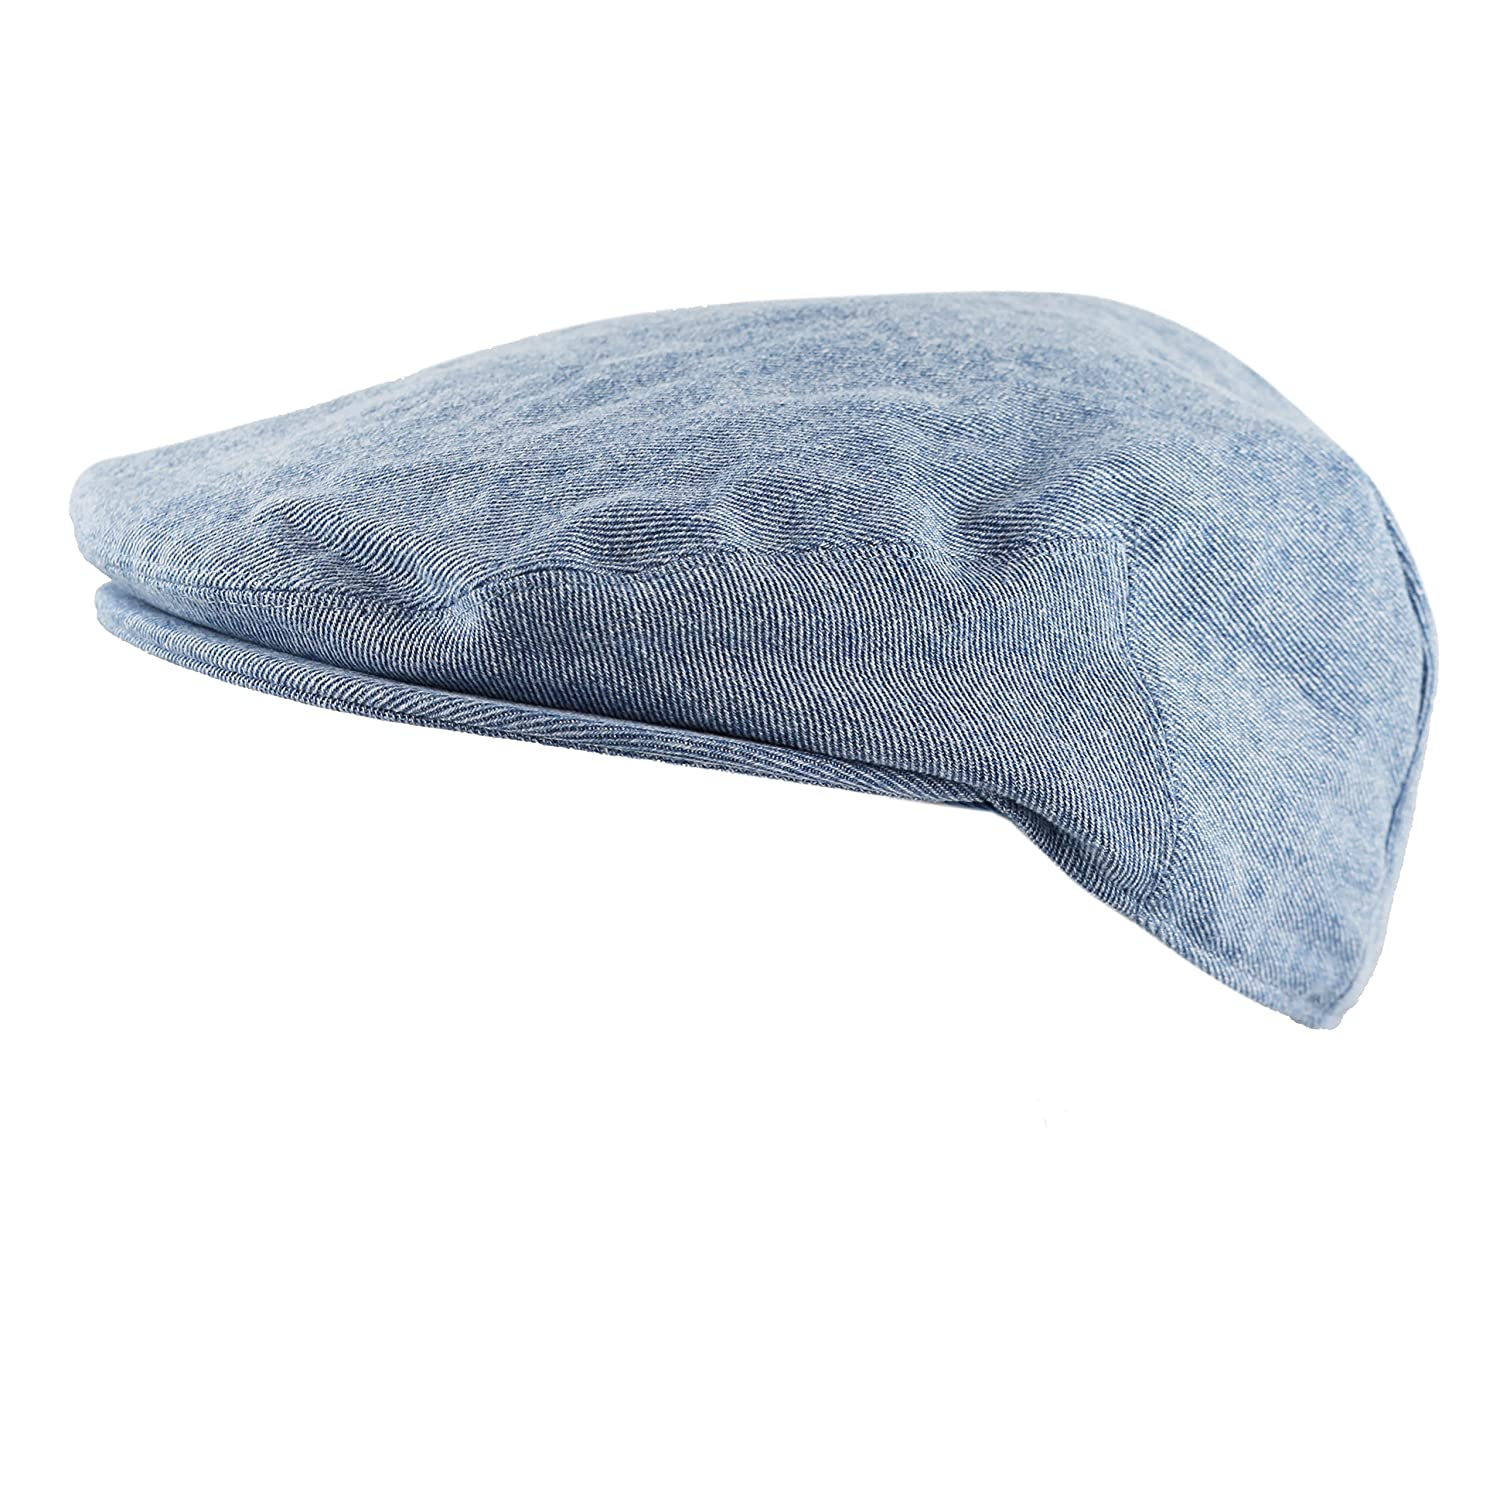 f9766d407f7 THE HAT DEPOT Washed Denim Cotton Newsboy Ivy Cap Style Hat at Amazon Men s  Clothing store